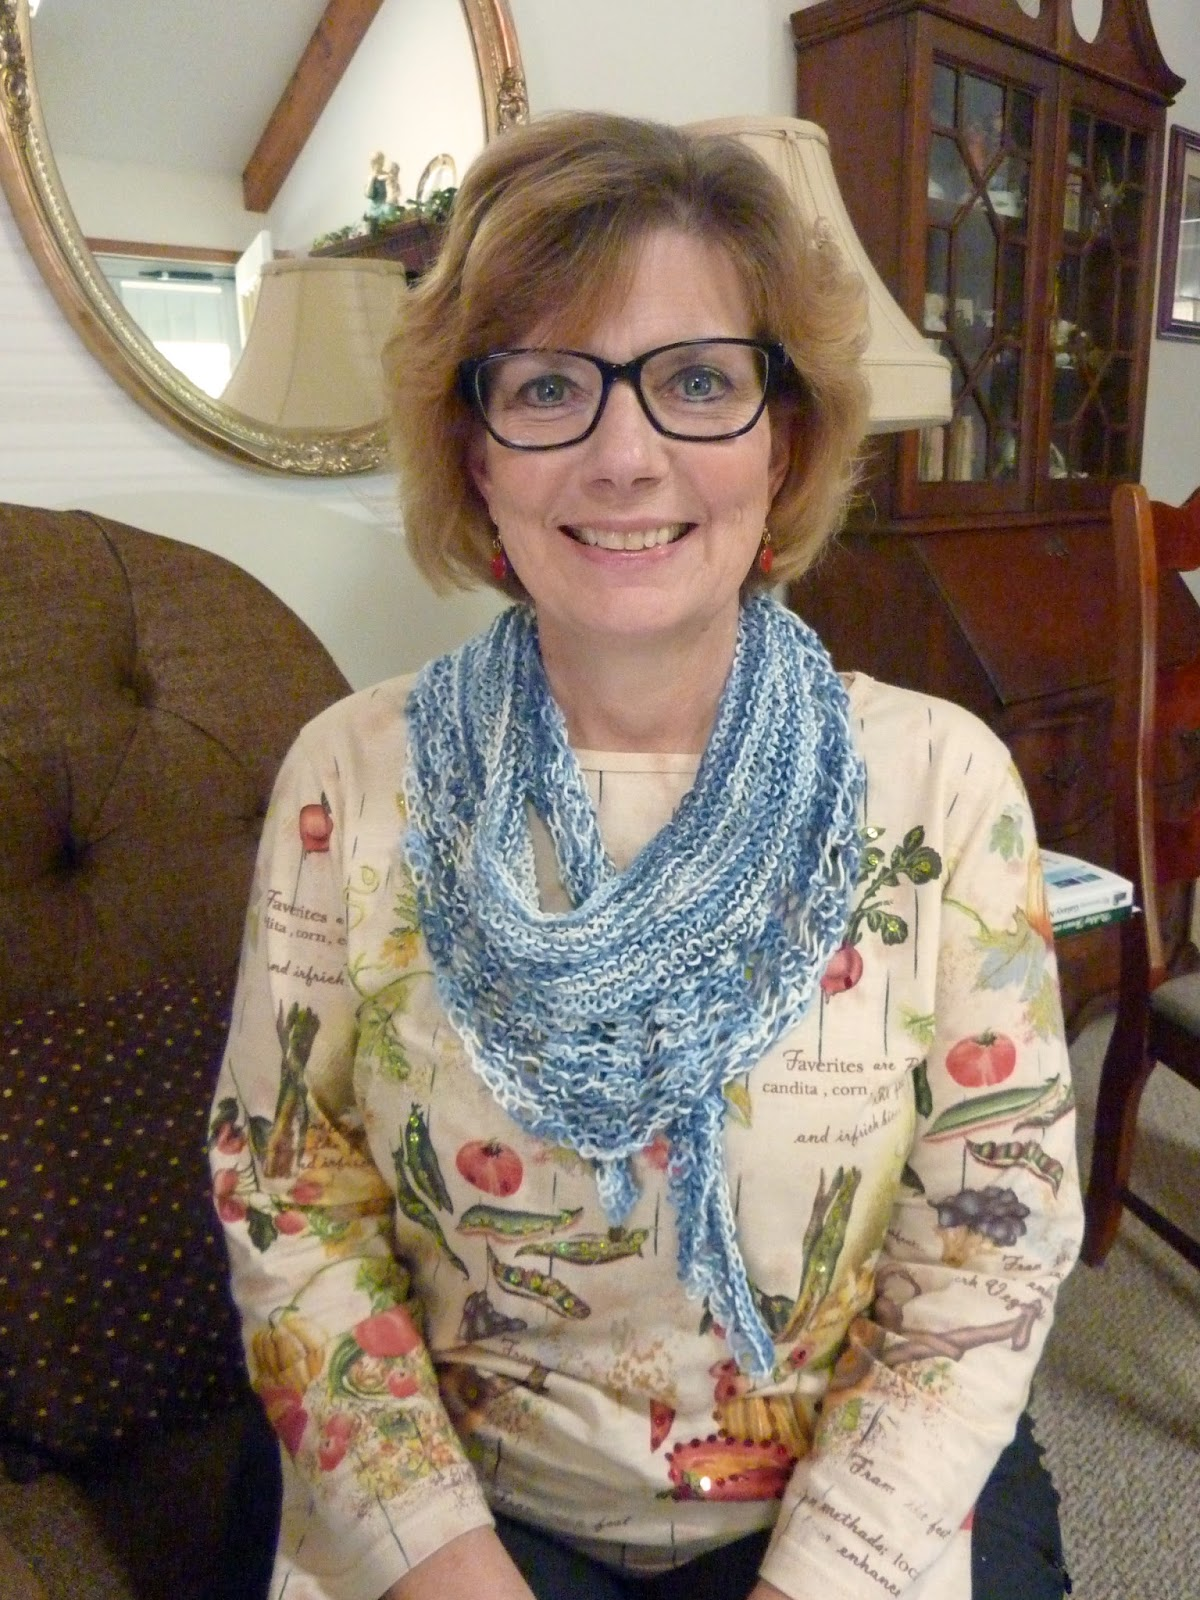 Knitting Pattern For Gallatin Scarf : Spinning Memories - Knitting Love: Early Christmas Gifts ...